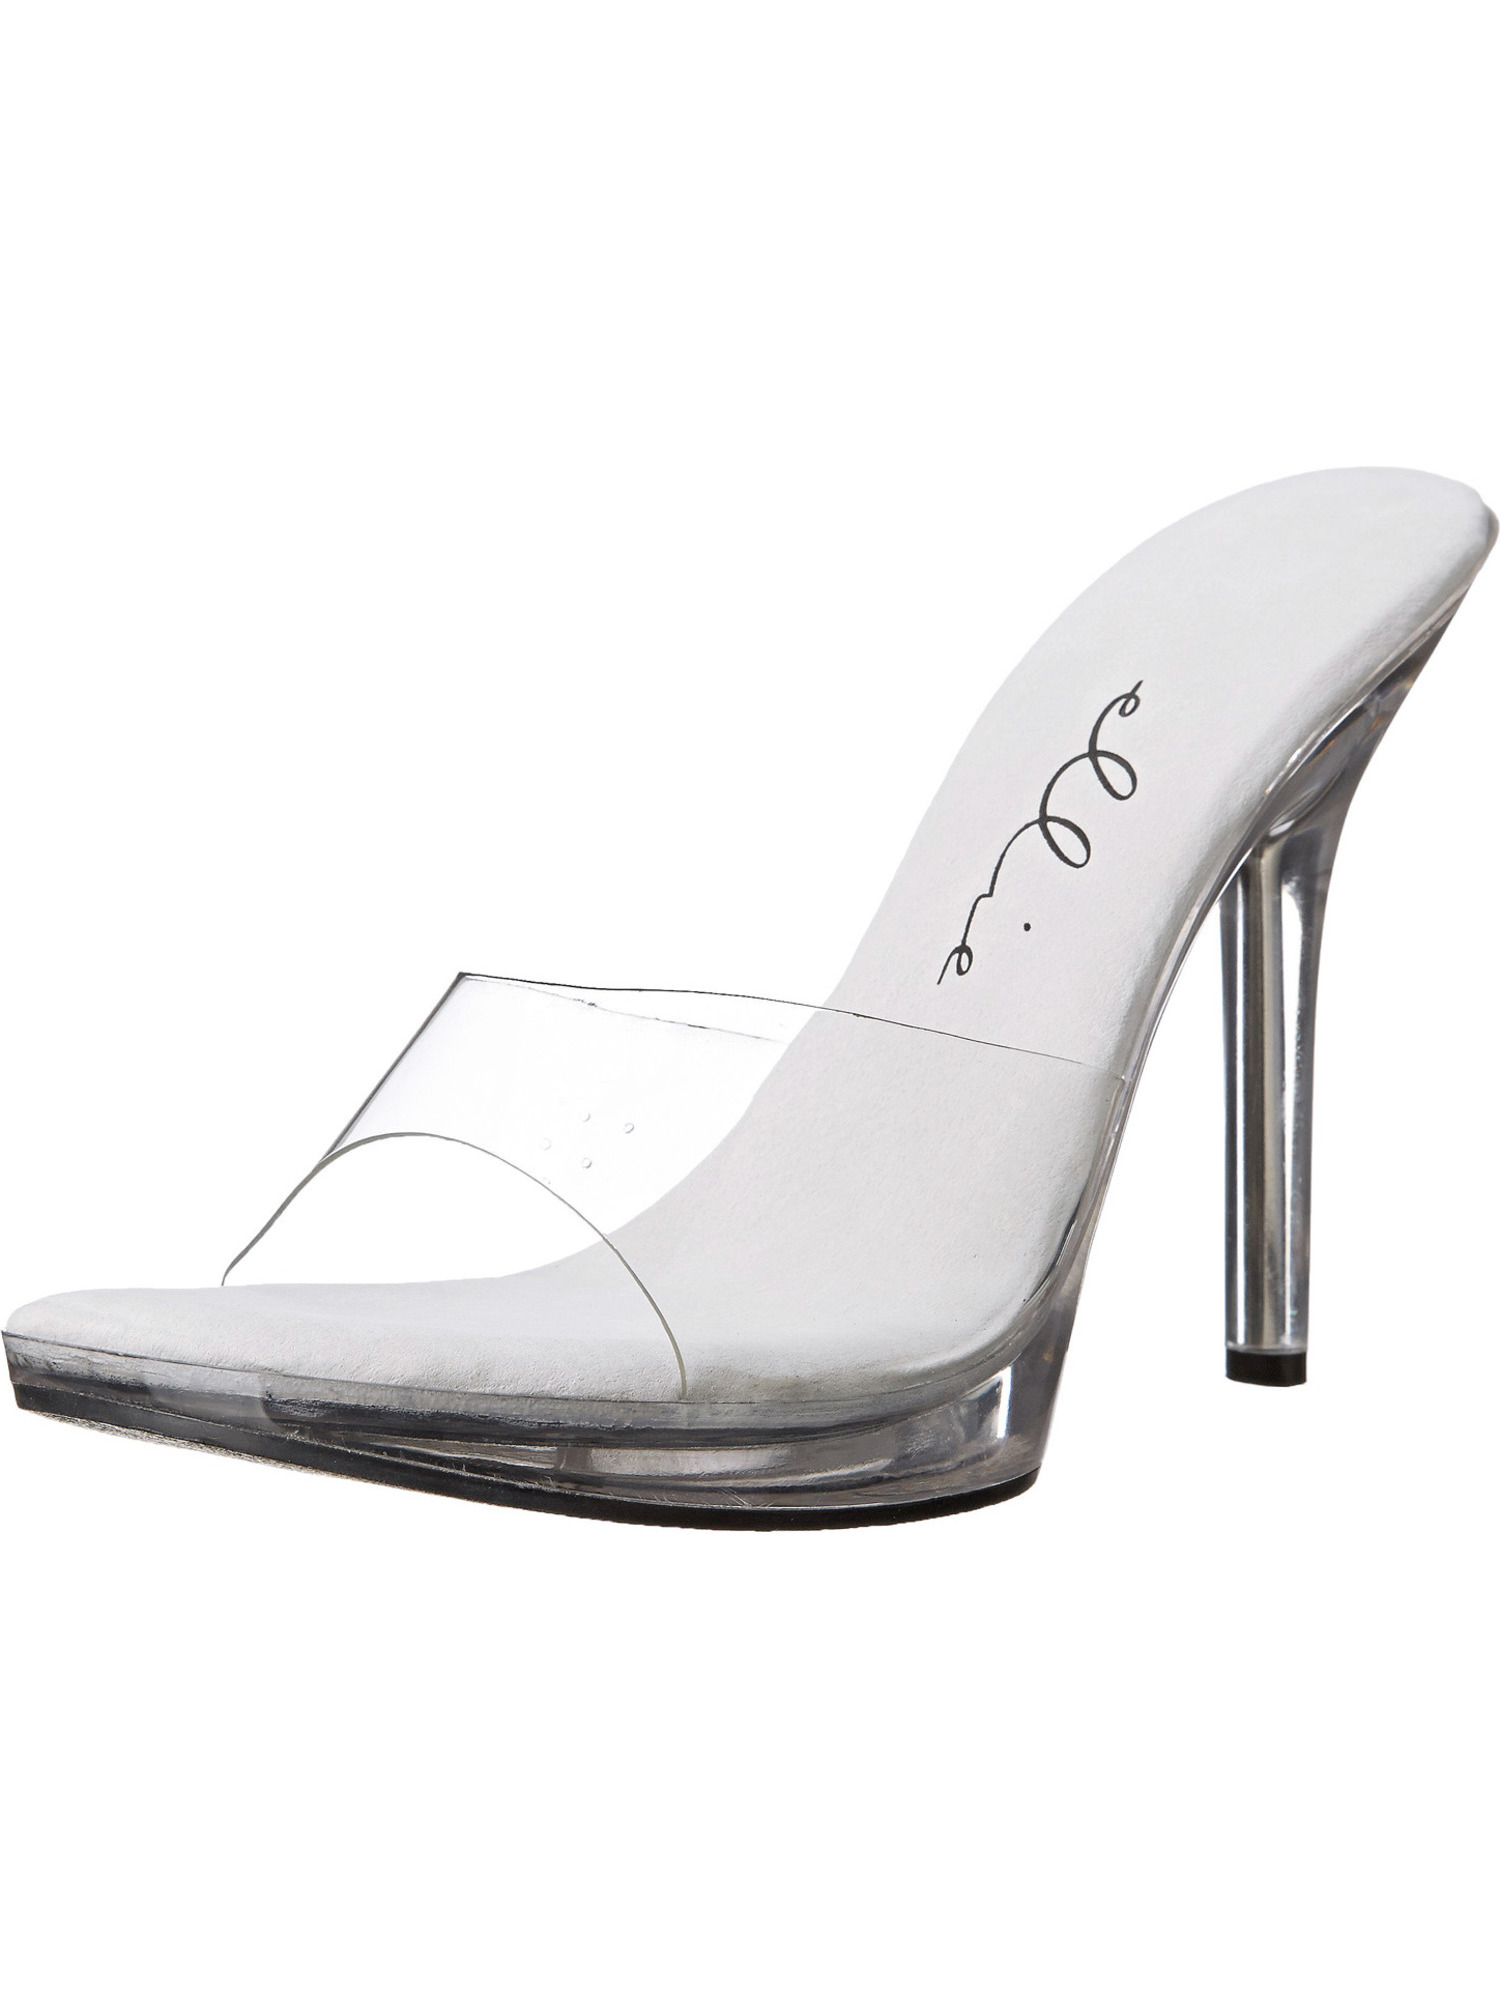 4.5 Inch Women's Evening Shoes Sexy Slip On Shoes Slides Mules Clear